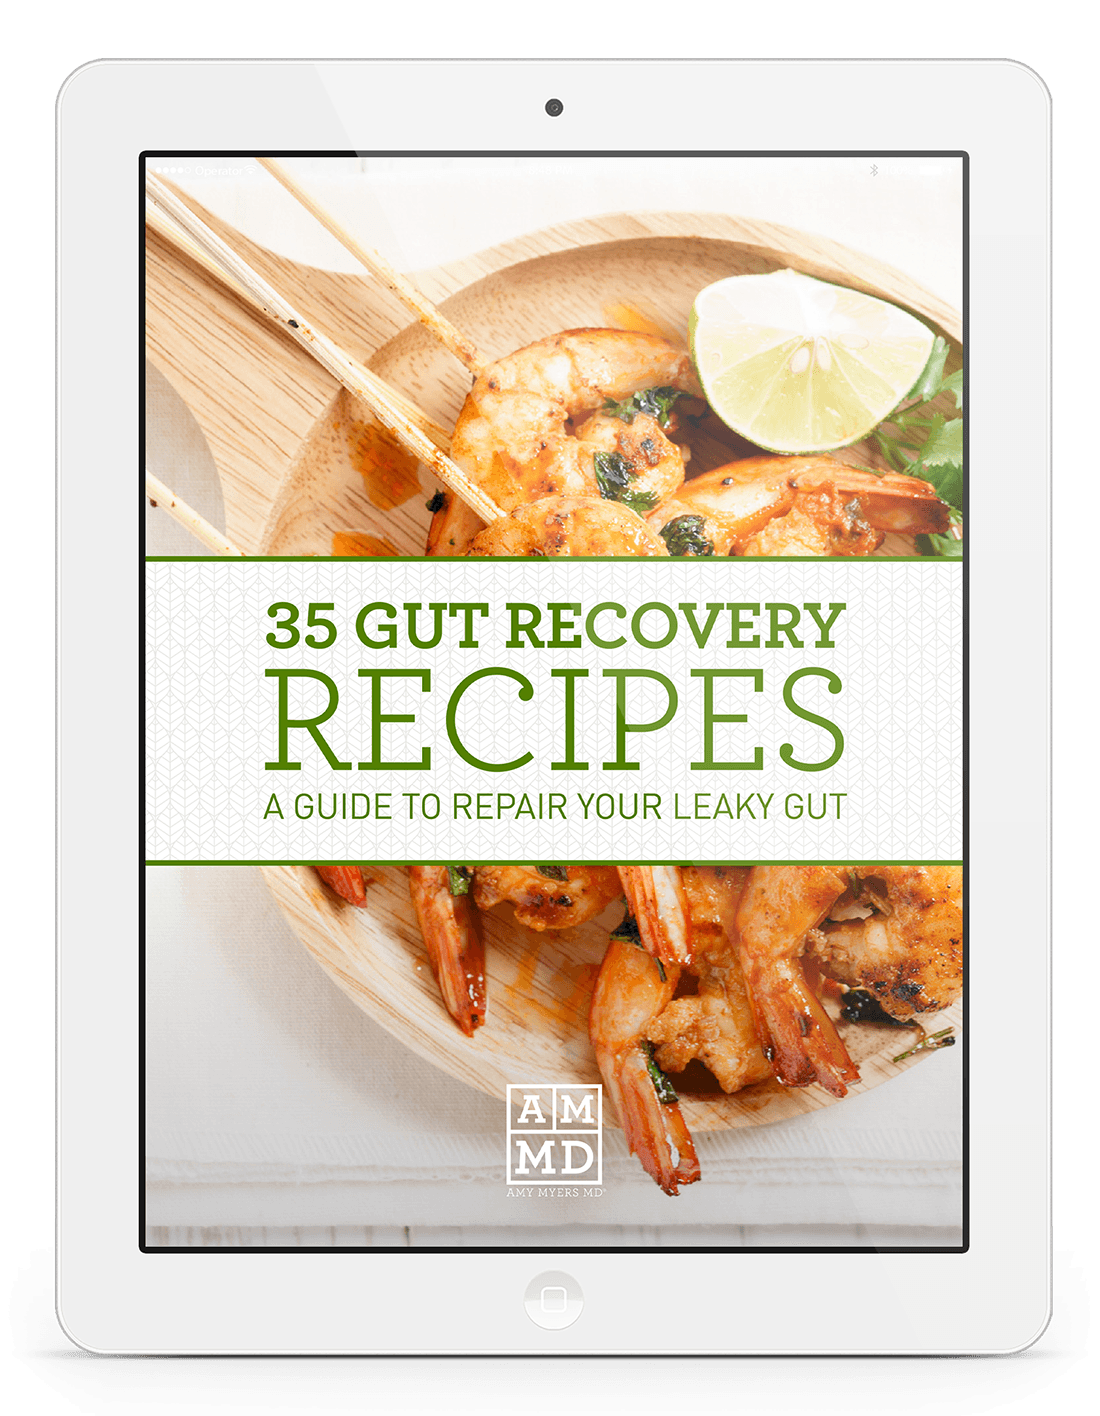 35 Gut Recovery Recipes eBook Cover